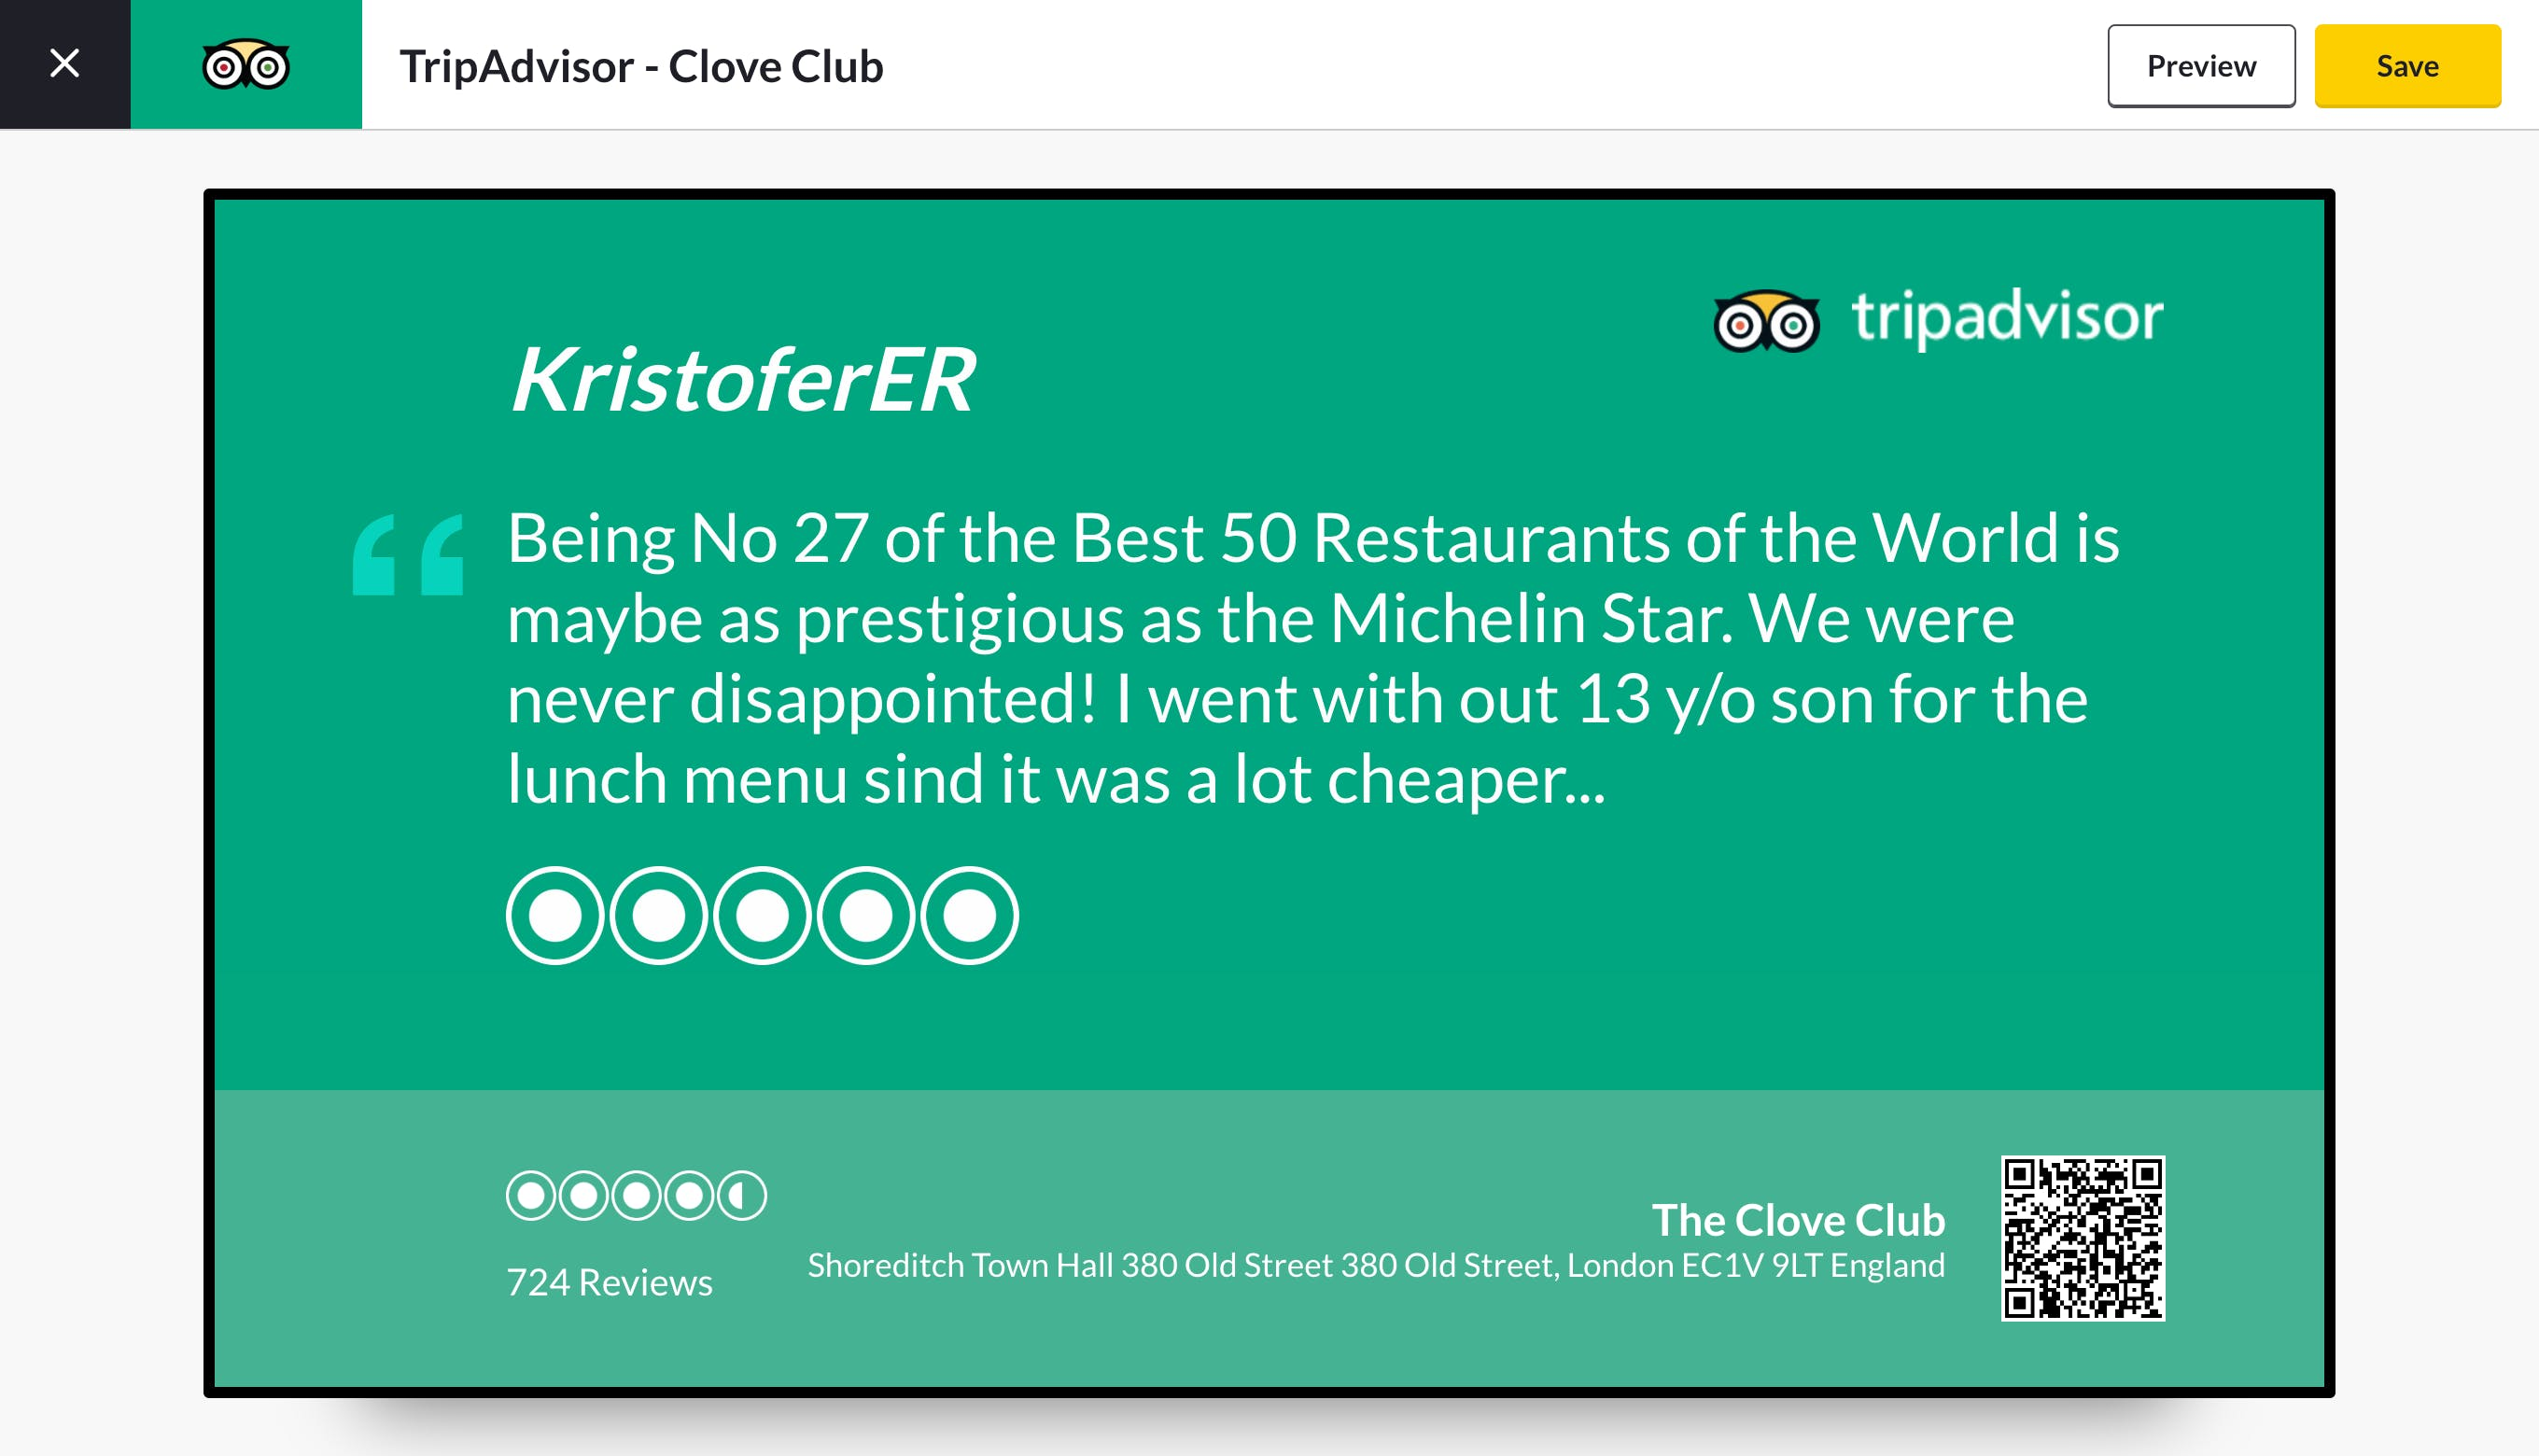 ScreenCloud TripAdvisor app preview